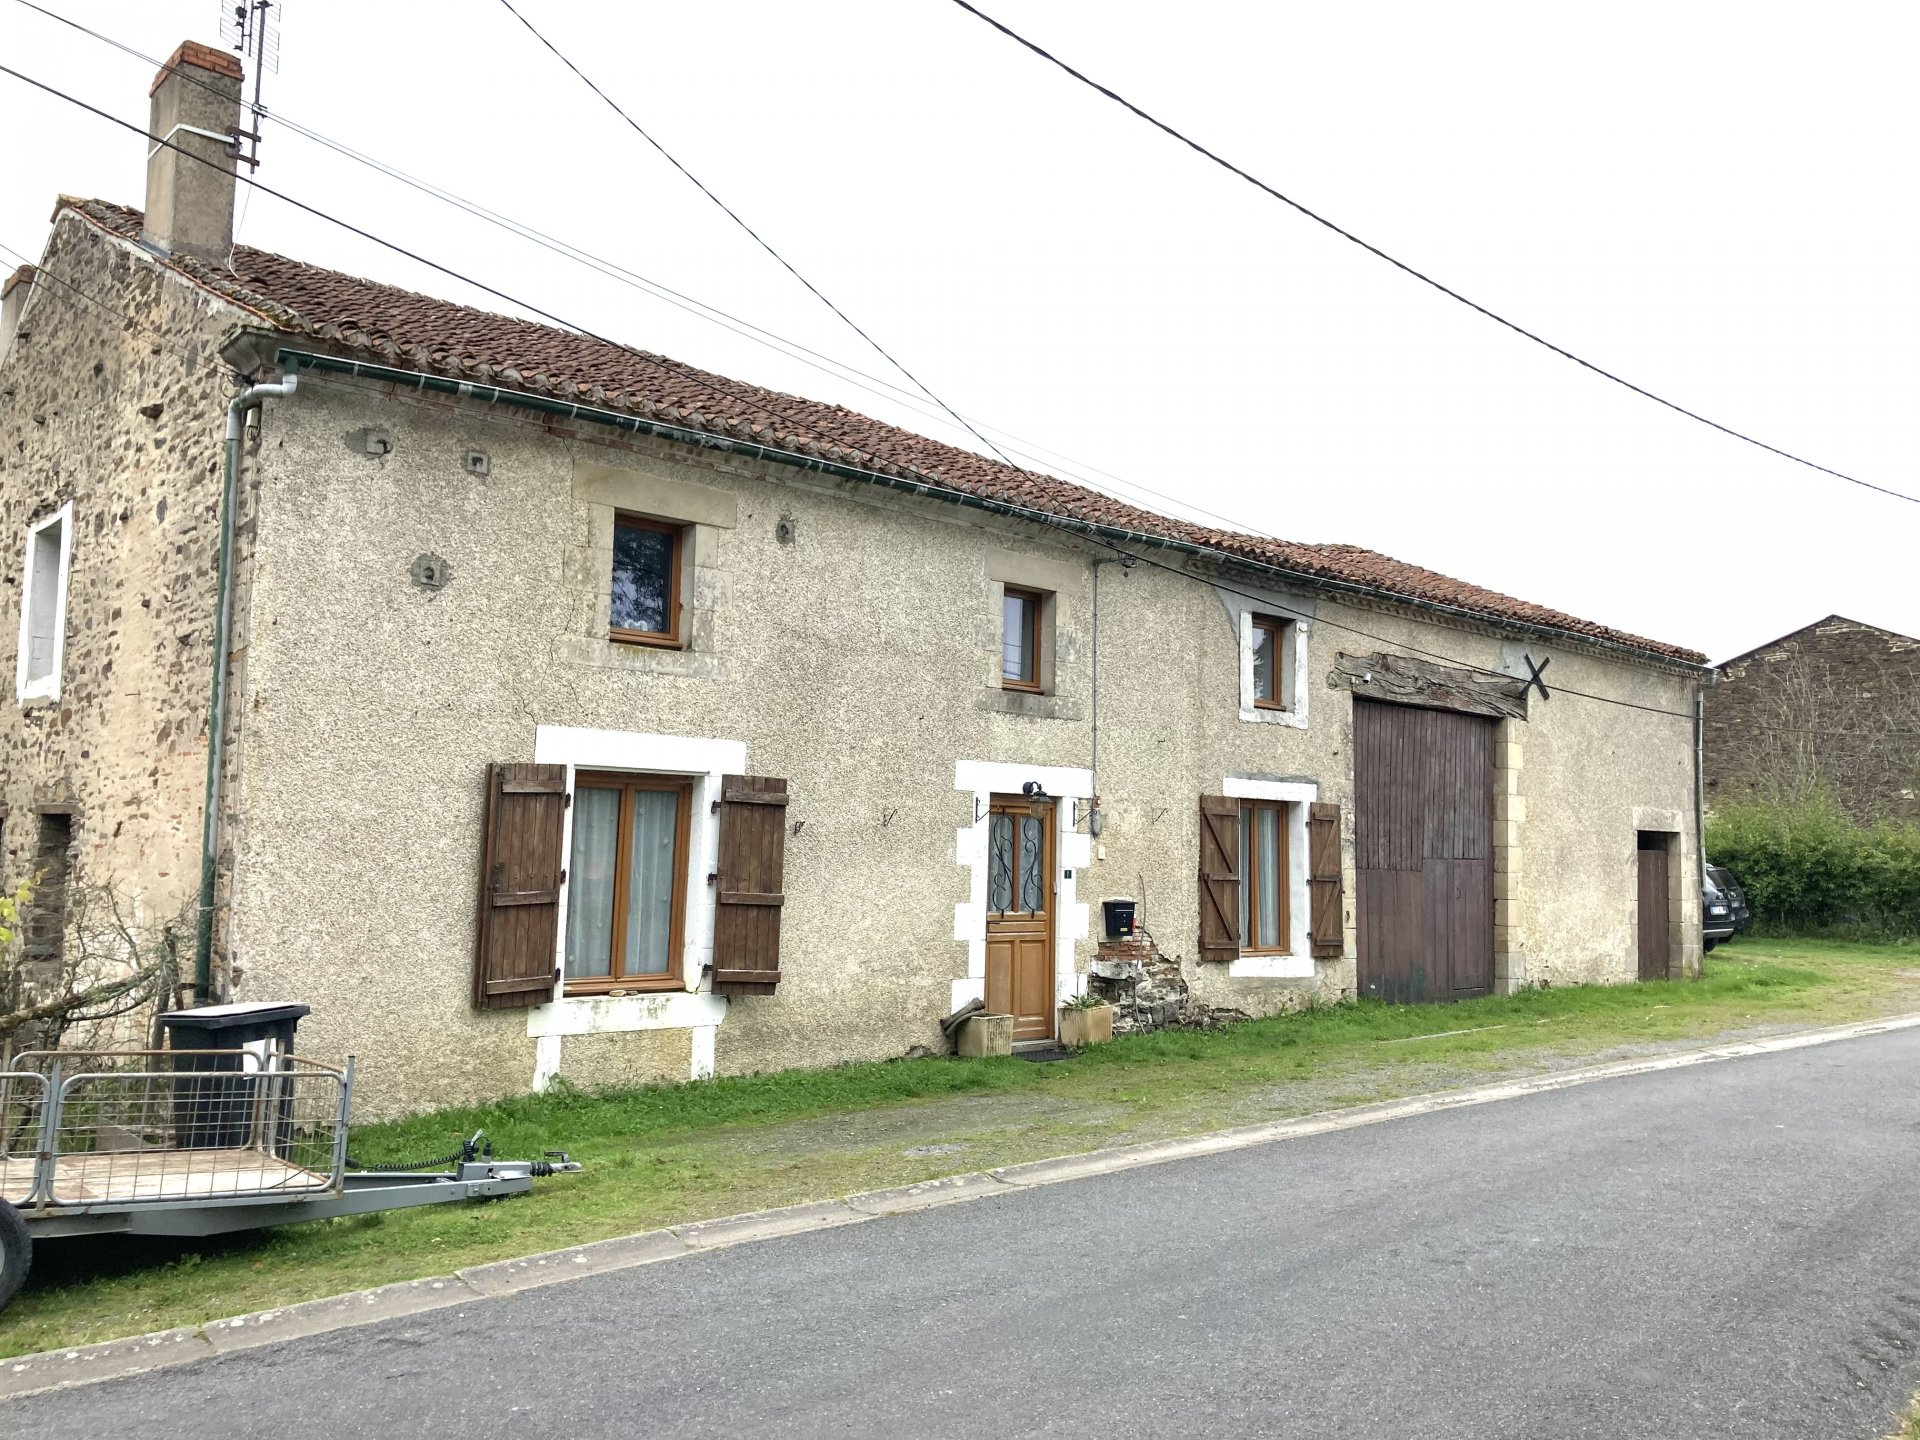 Five bedroom, four bathroom hamlet home with further small house to renovate